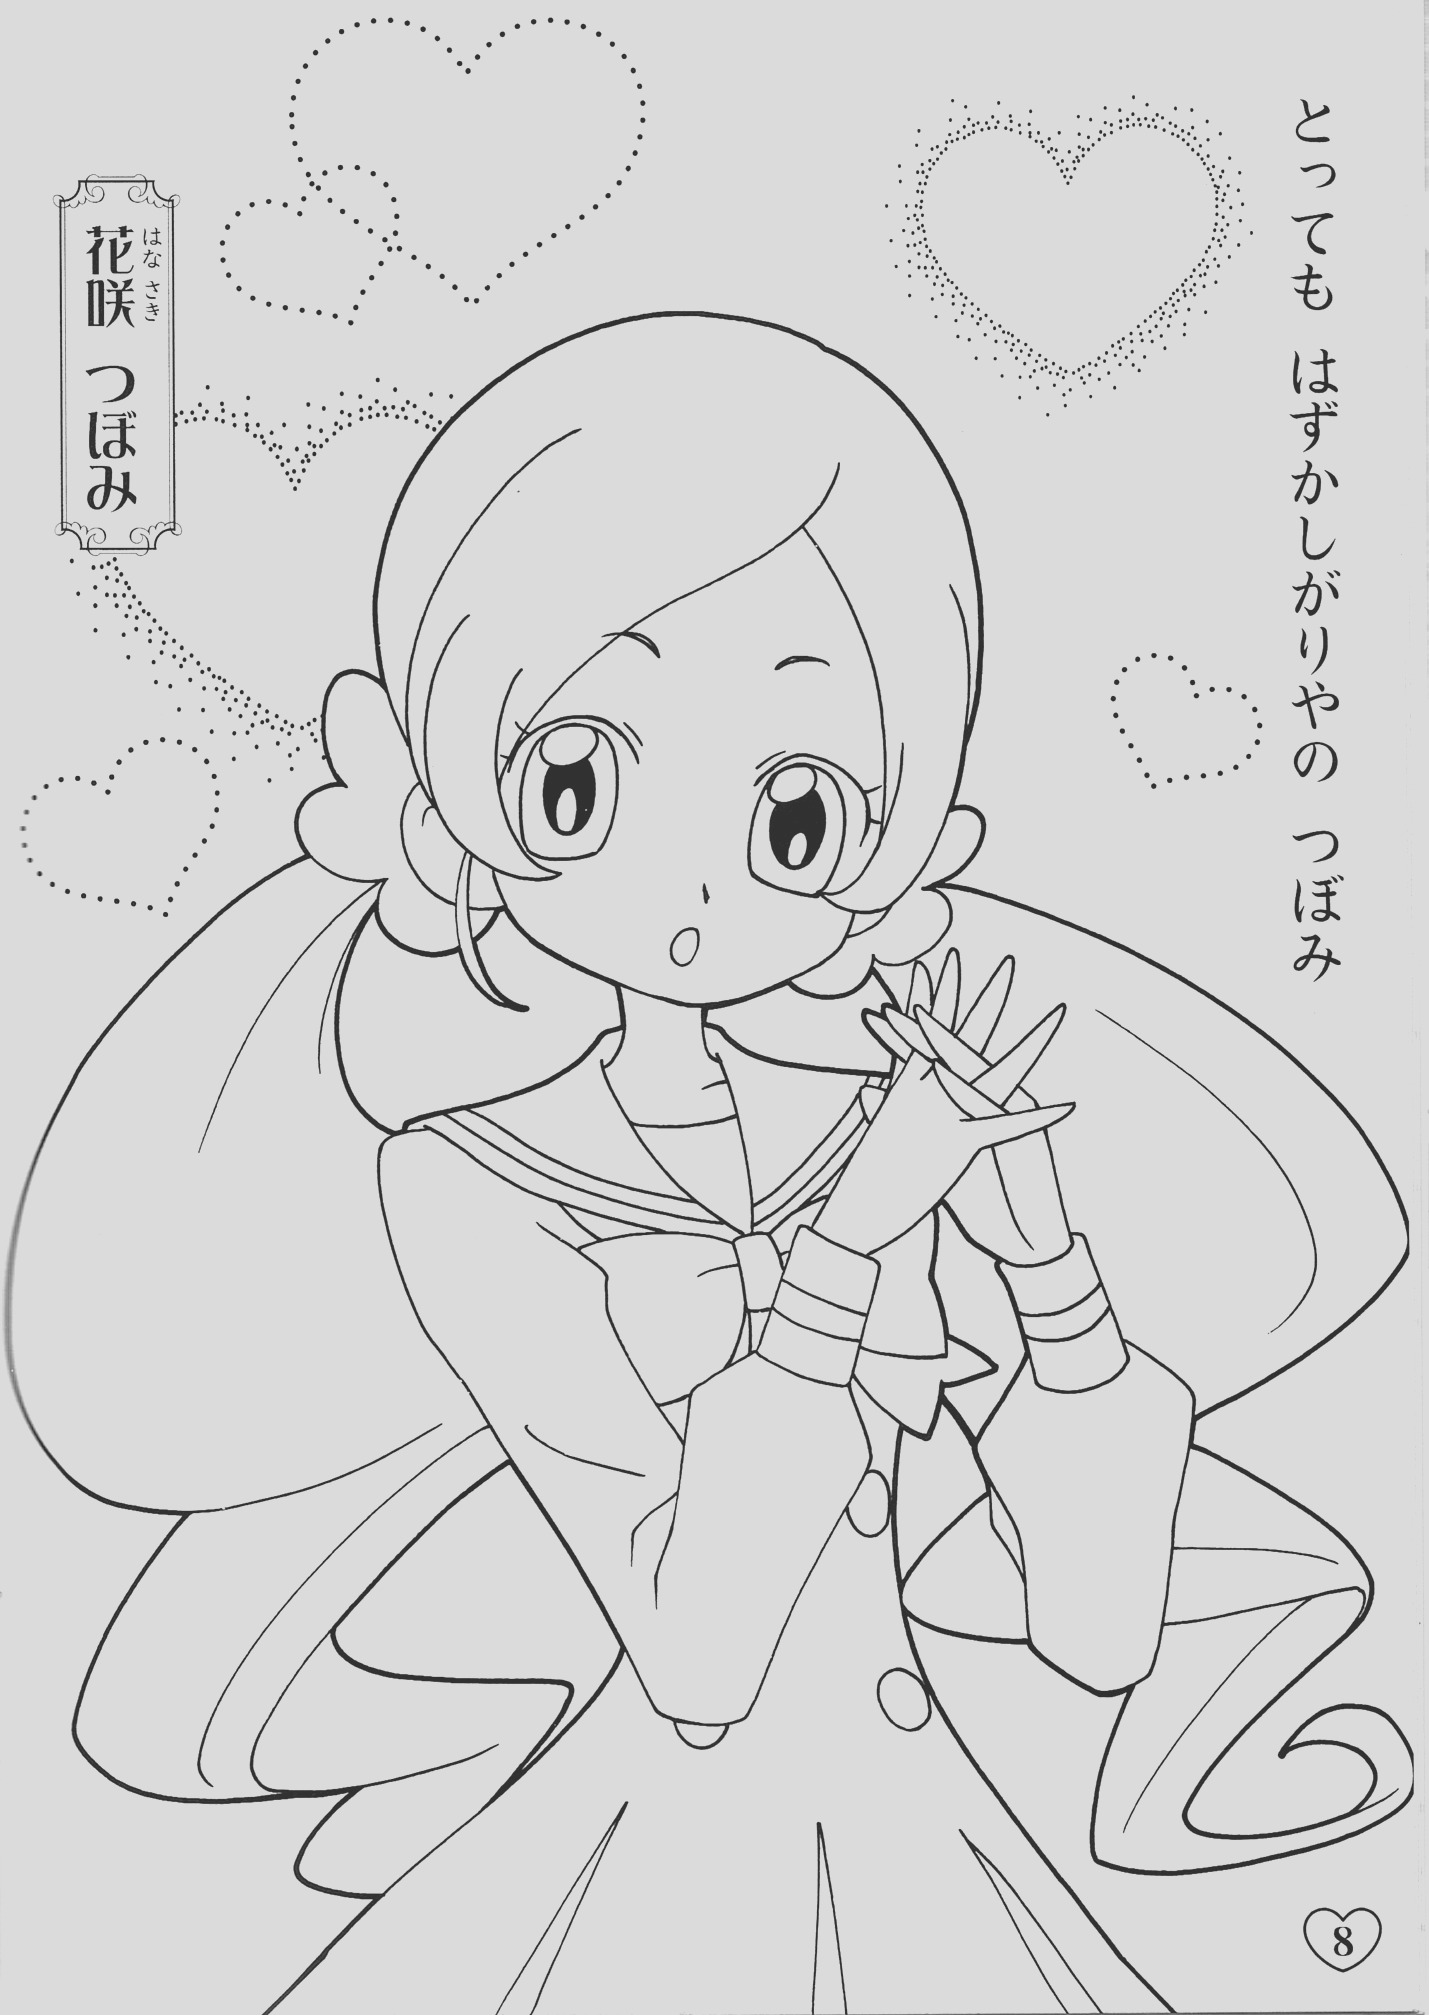 yes precure 5 coloring pages sketch templates